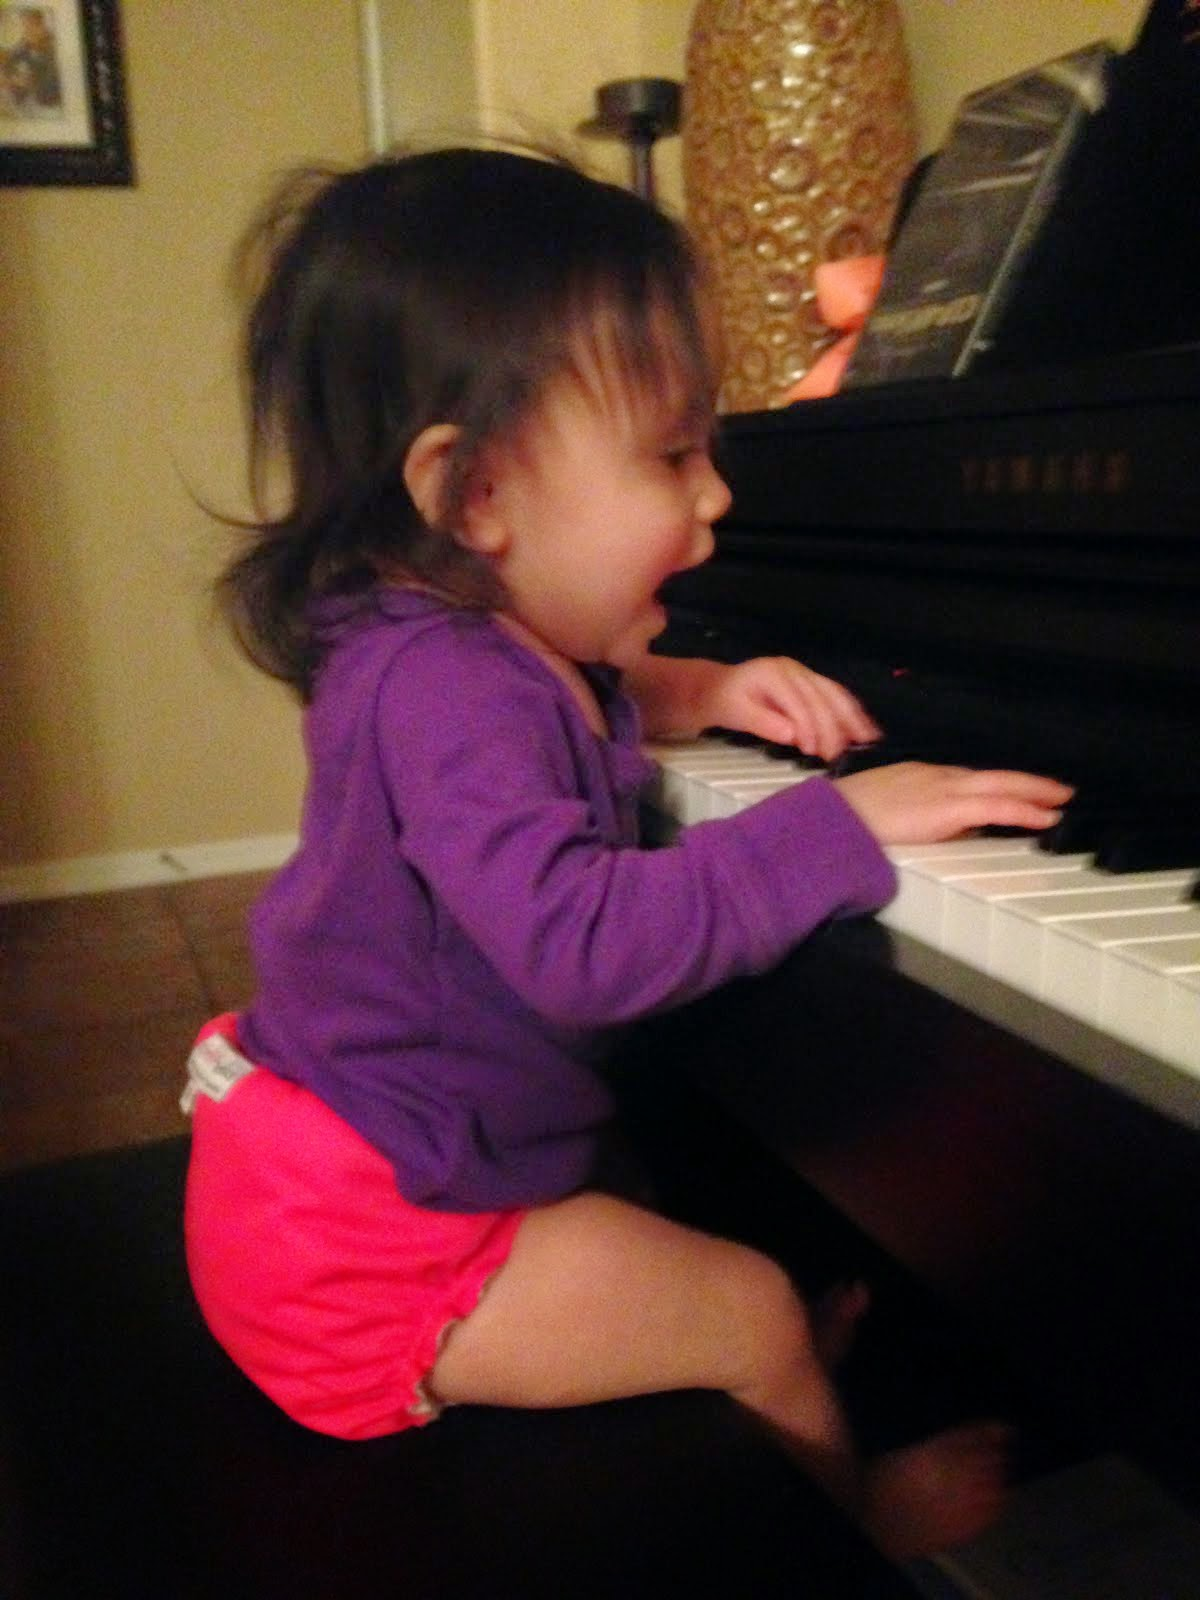 Pianist in the making - January 2014